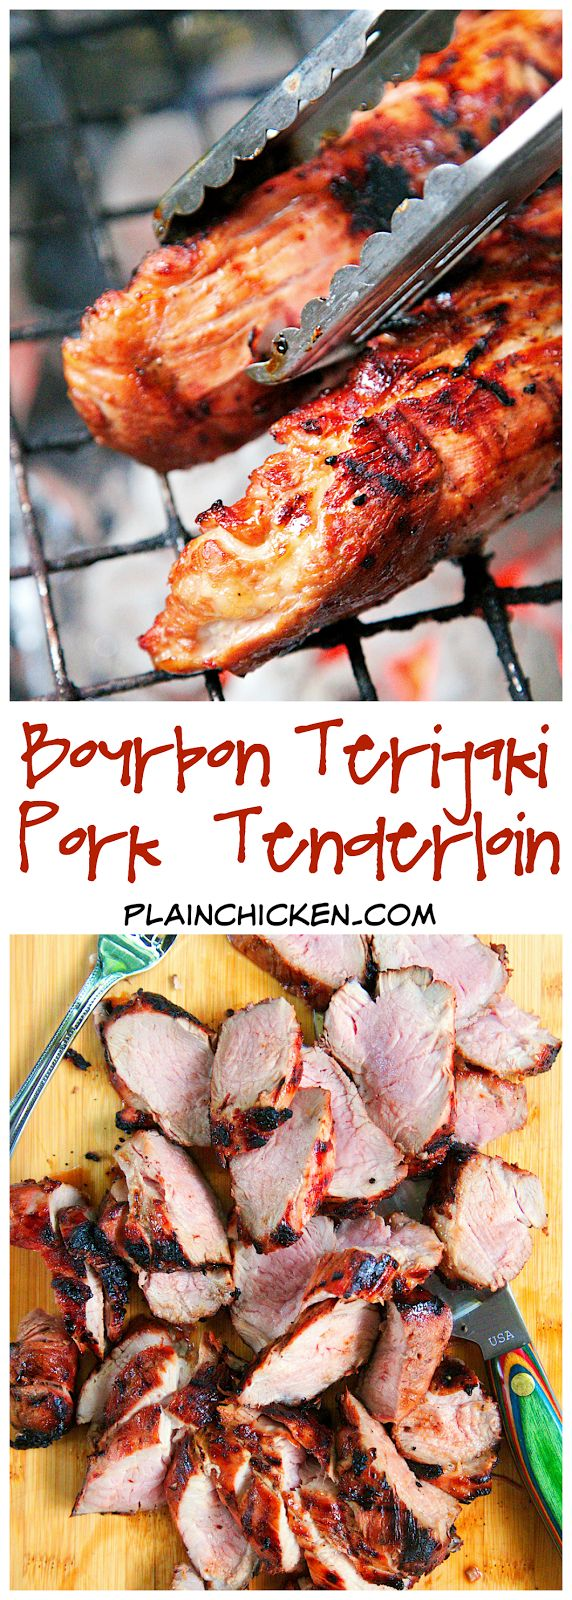 Bourbon Teriyaki Pork Tenderloin